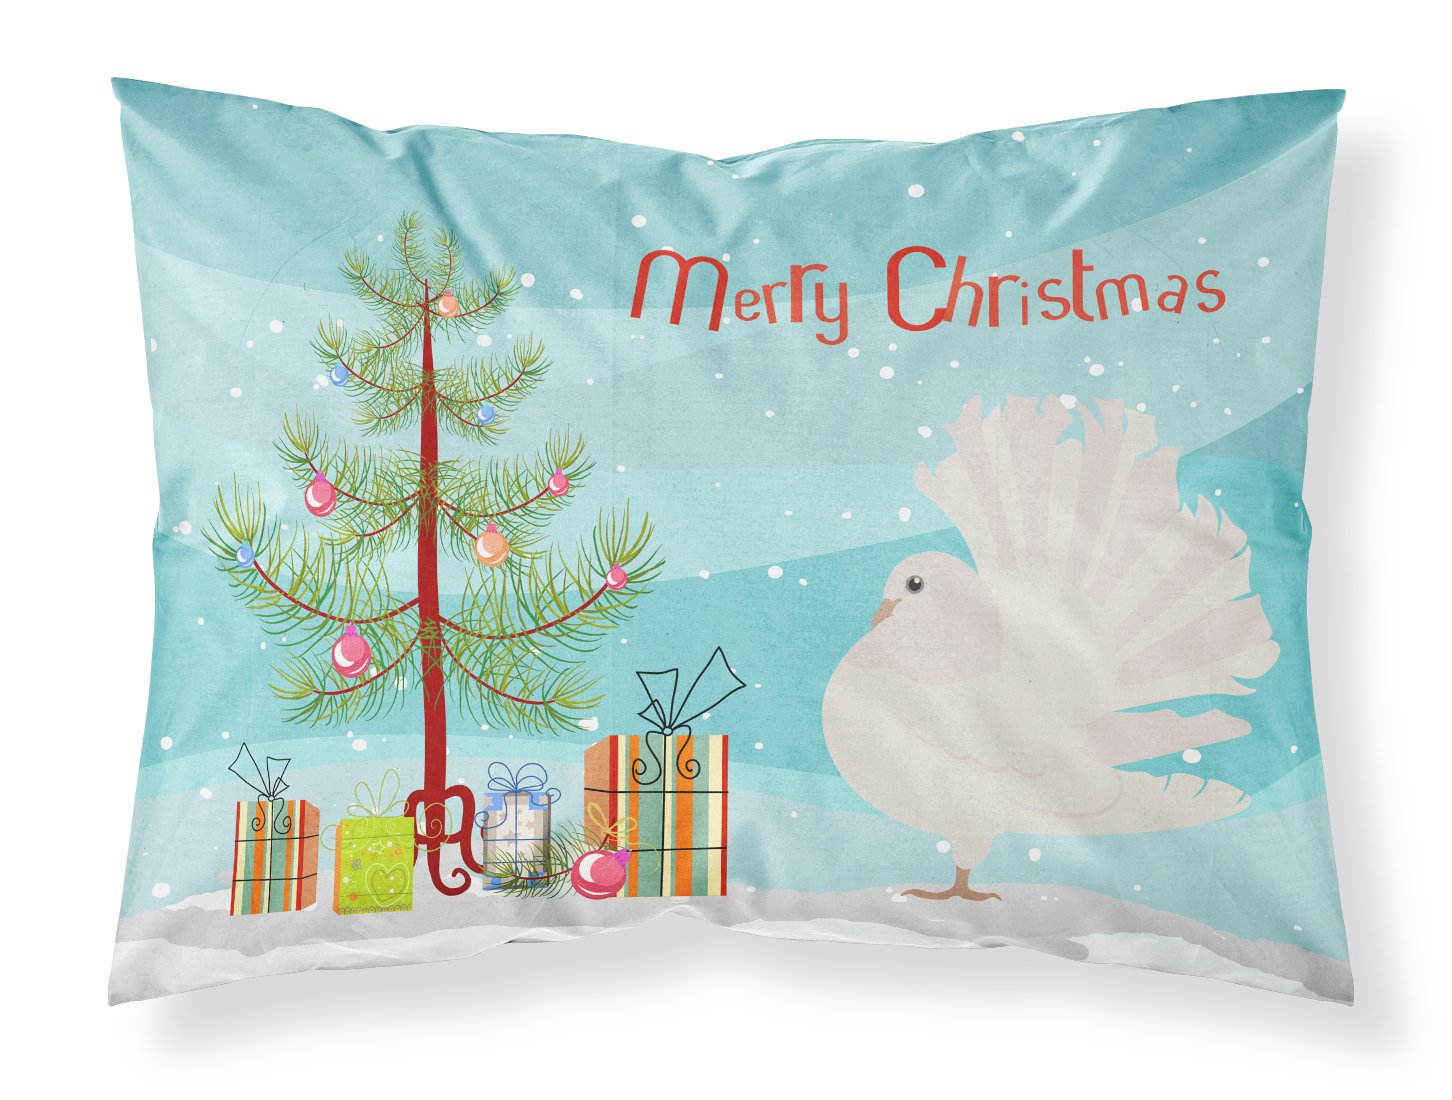 Silver Fantail Pigeon Christmas Fabric Standard Pillowcase BB9317PILLOWCASE by Caroline's Treasures